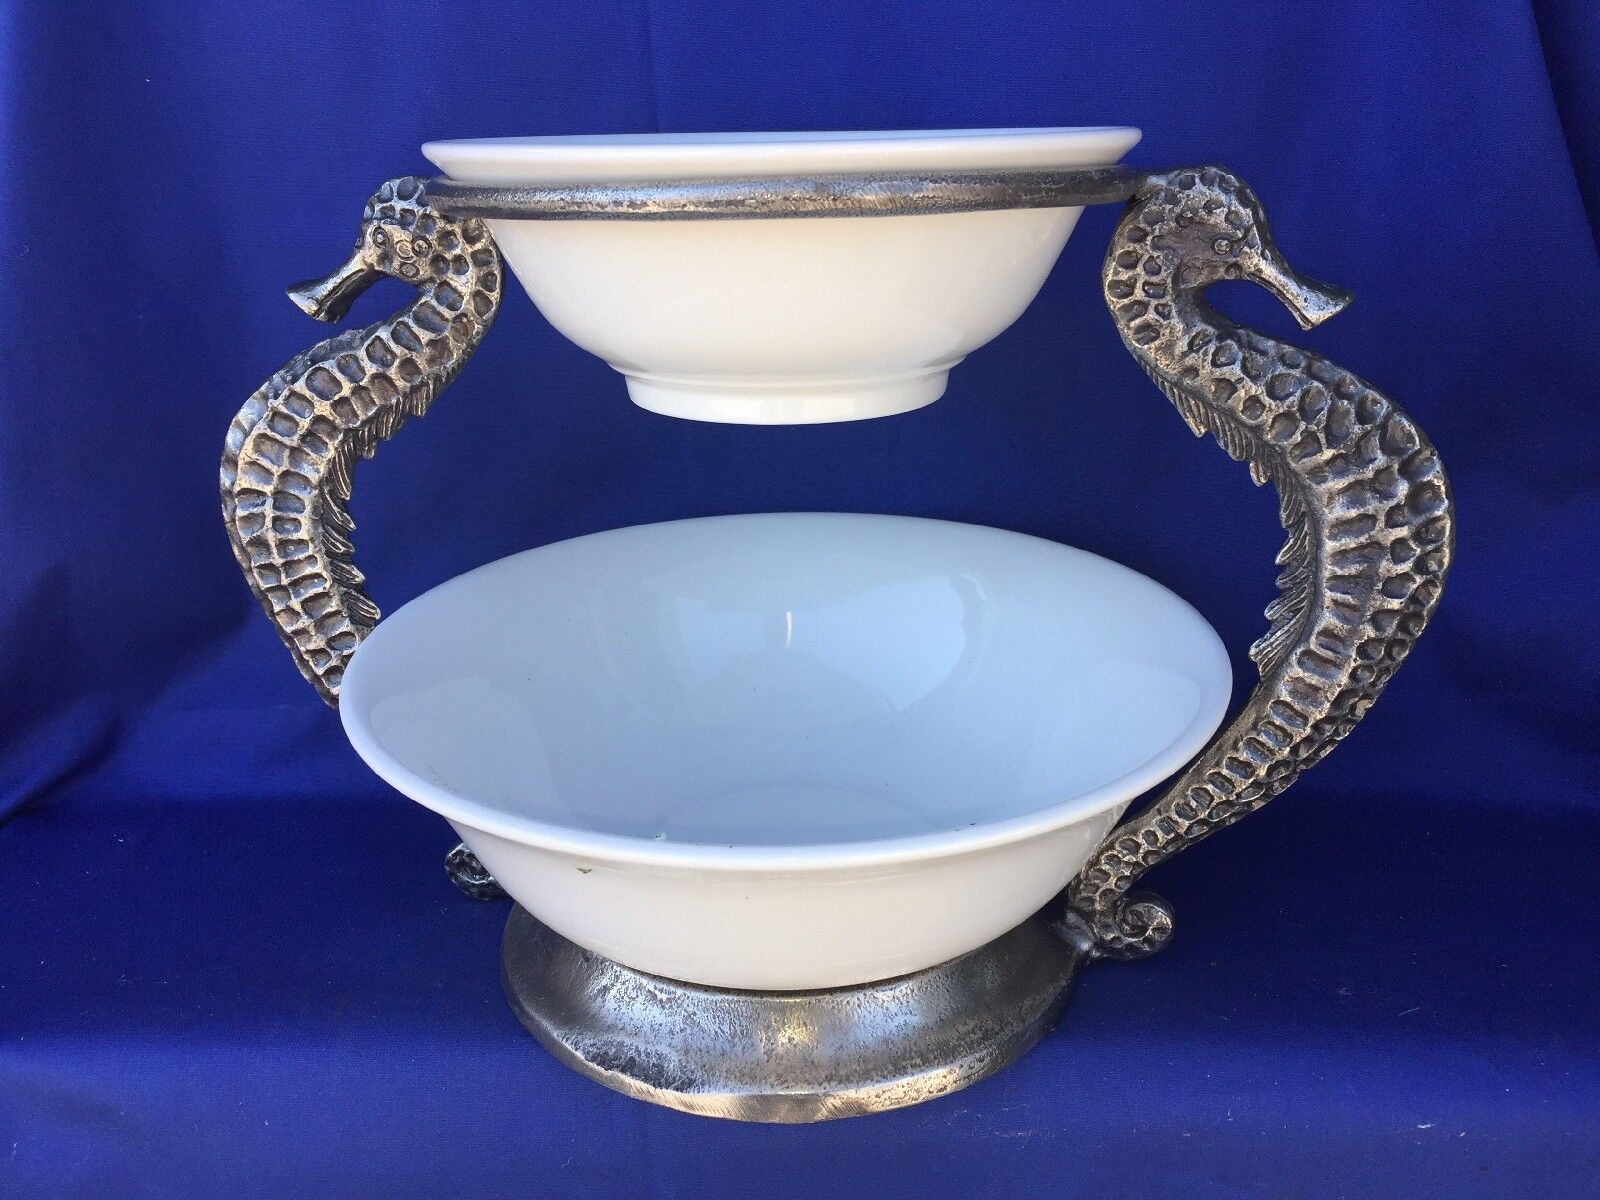 Vintage PIER 1 Serving Bowls Bowls Bowls on Stand NAUTICAL ooak RARE ▬ PEWTER SEAHORSE  ️m17 753853